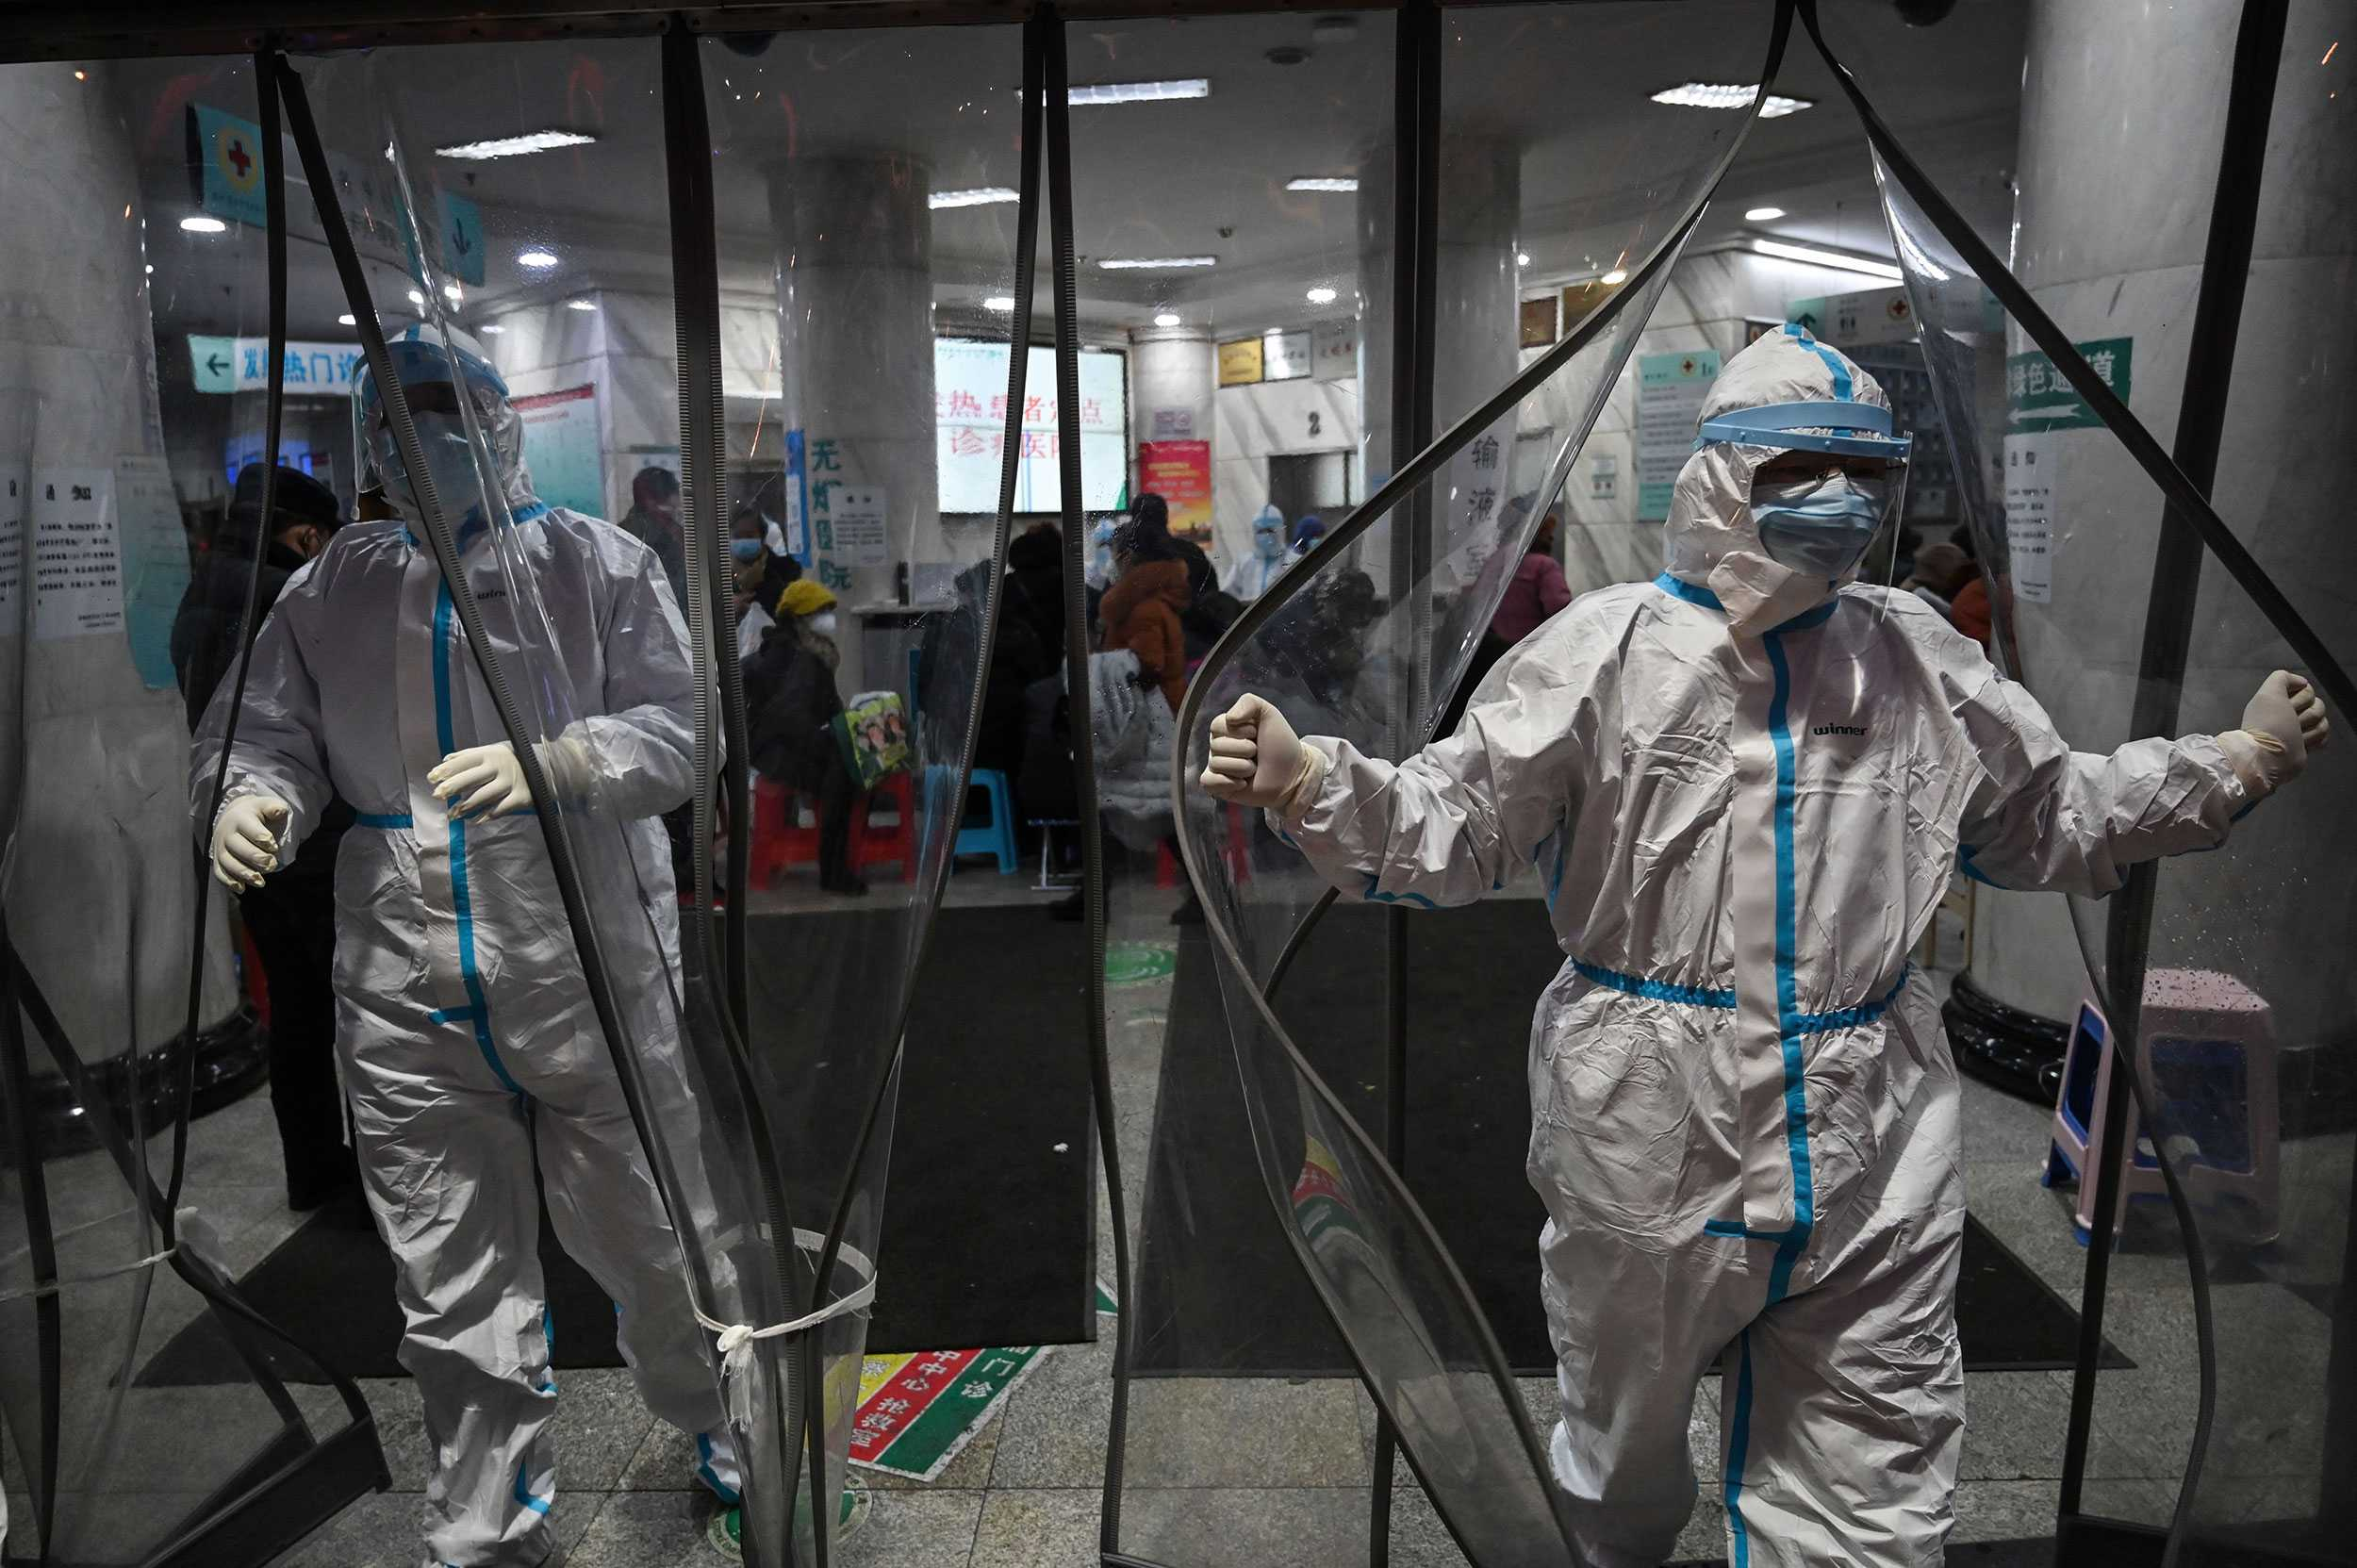 US advises citizens to reconsider travel to China after coronavirus outbreak